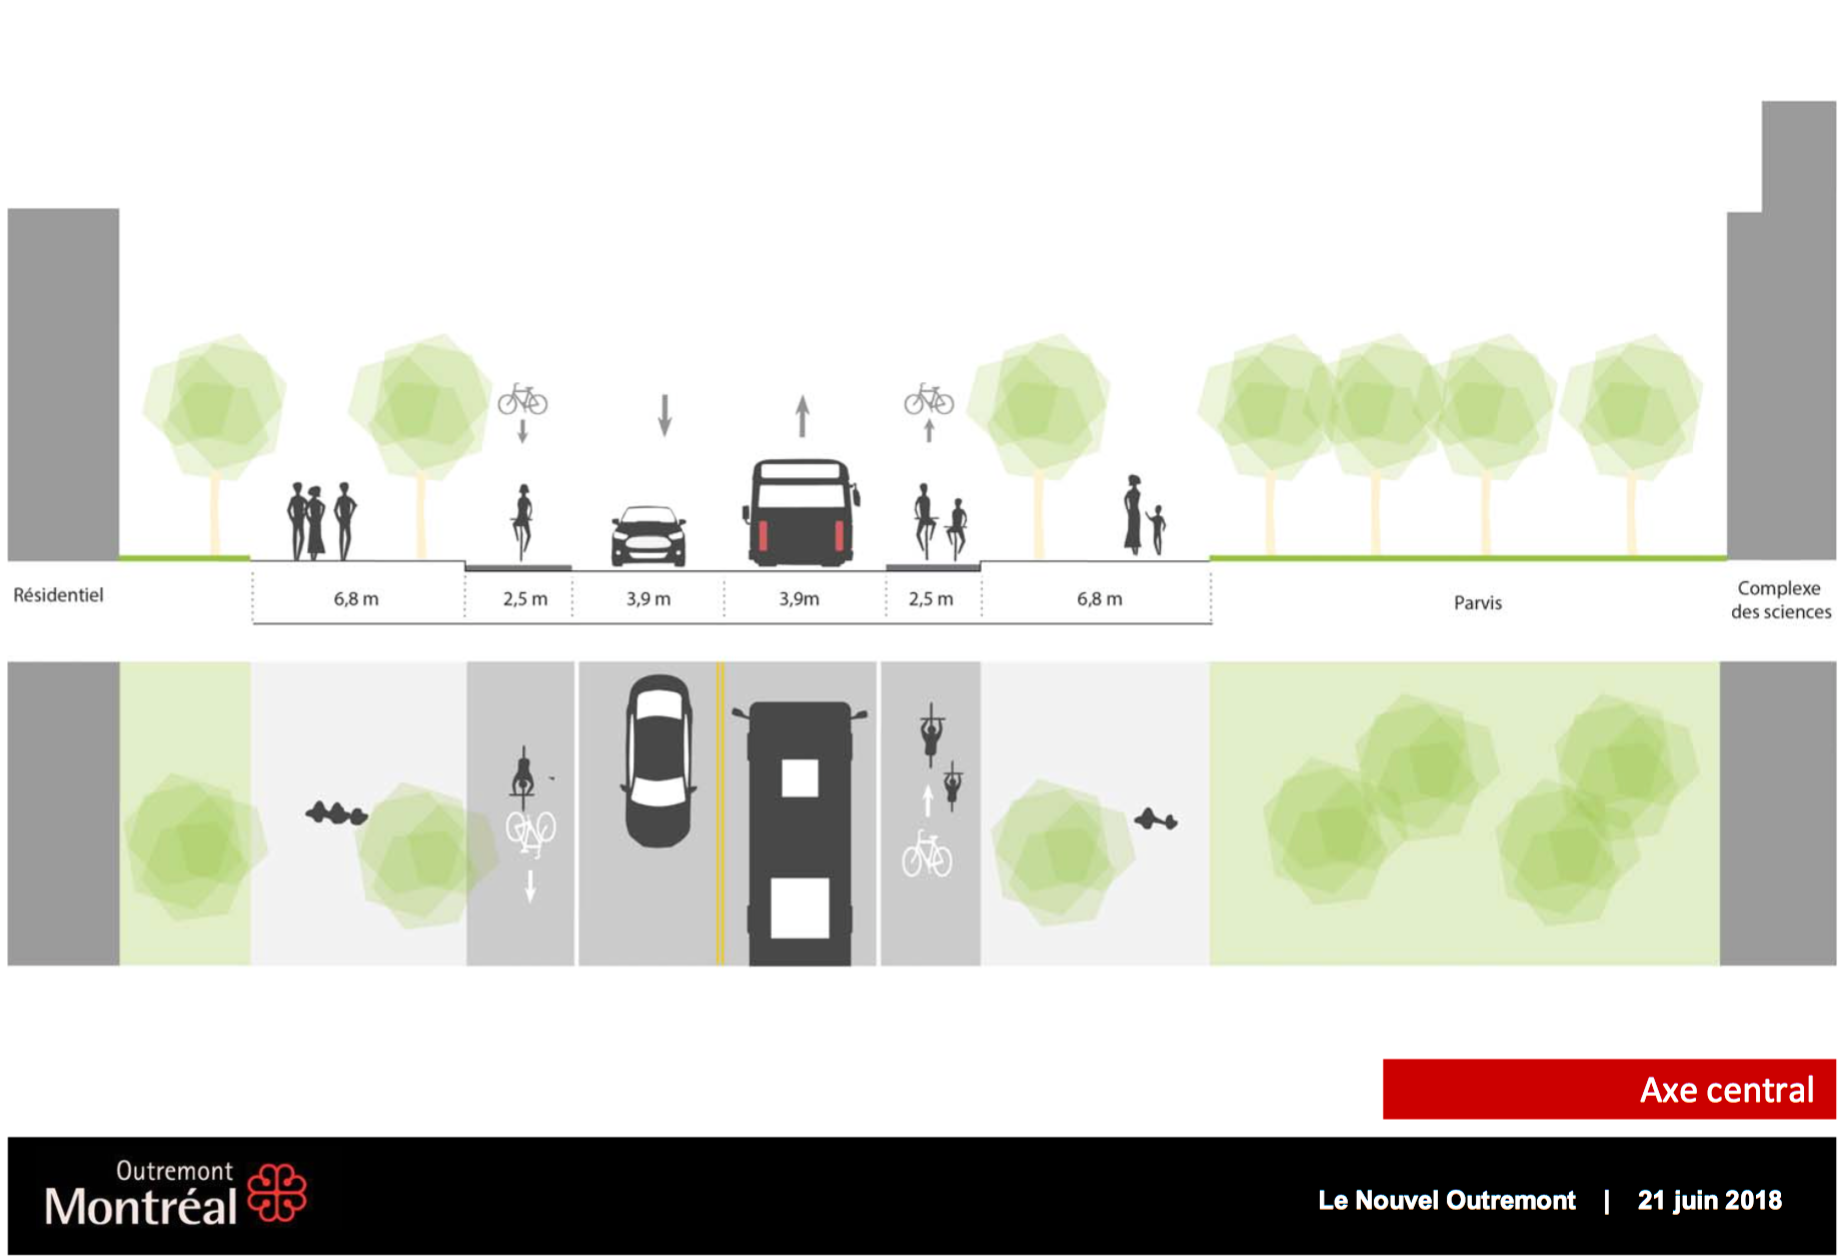 The City of Montréal inspired by Copenhagenize Design Co.'s infrastructure recommendations (Ville de Montréal).